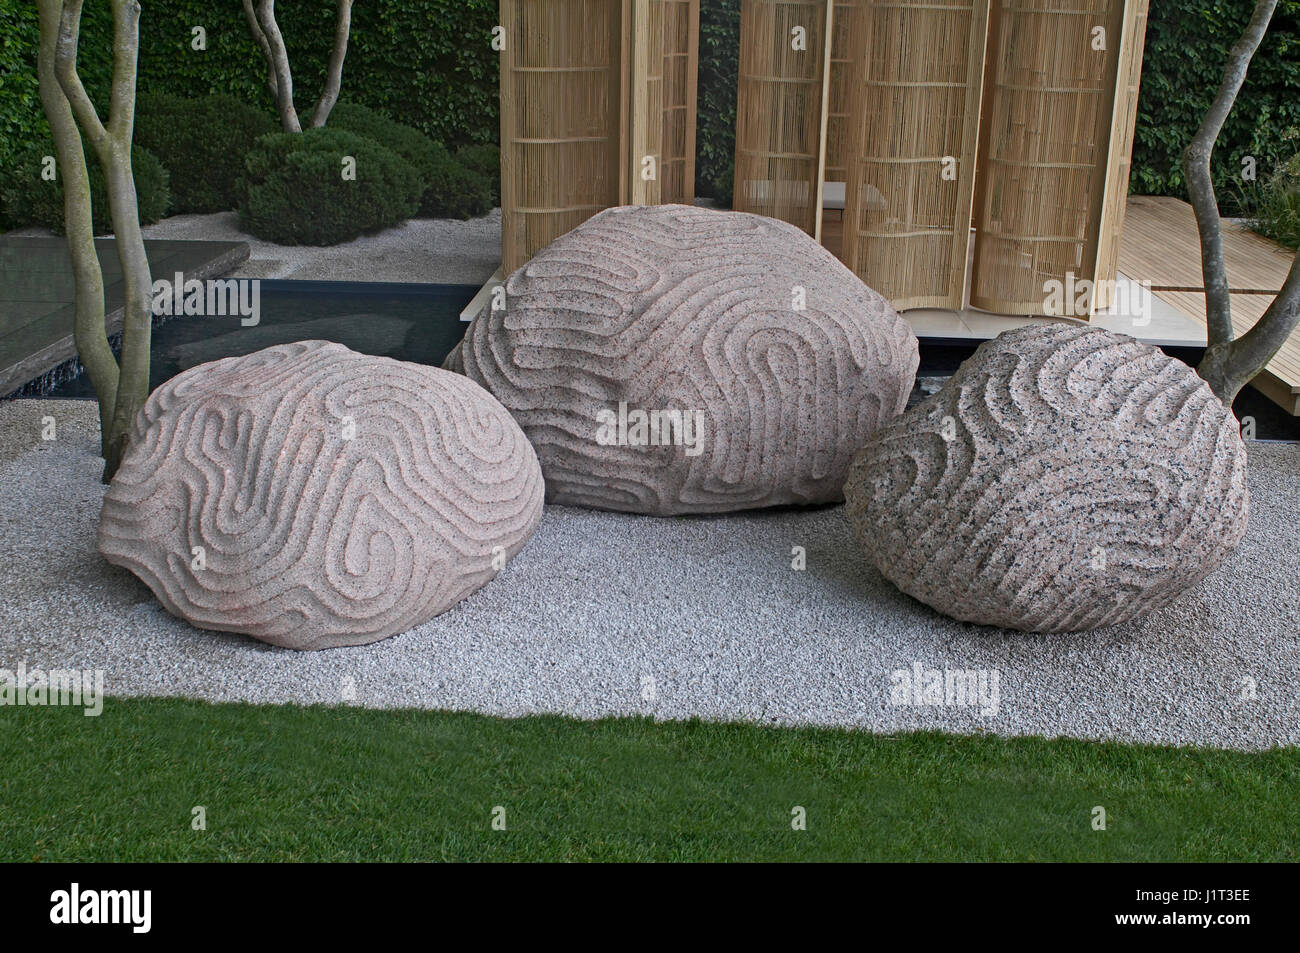 Sculpture showing the intervention of humans into nature in a garden setting - Stock Image